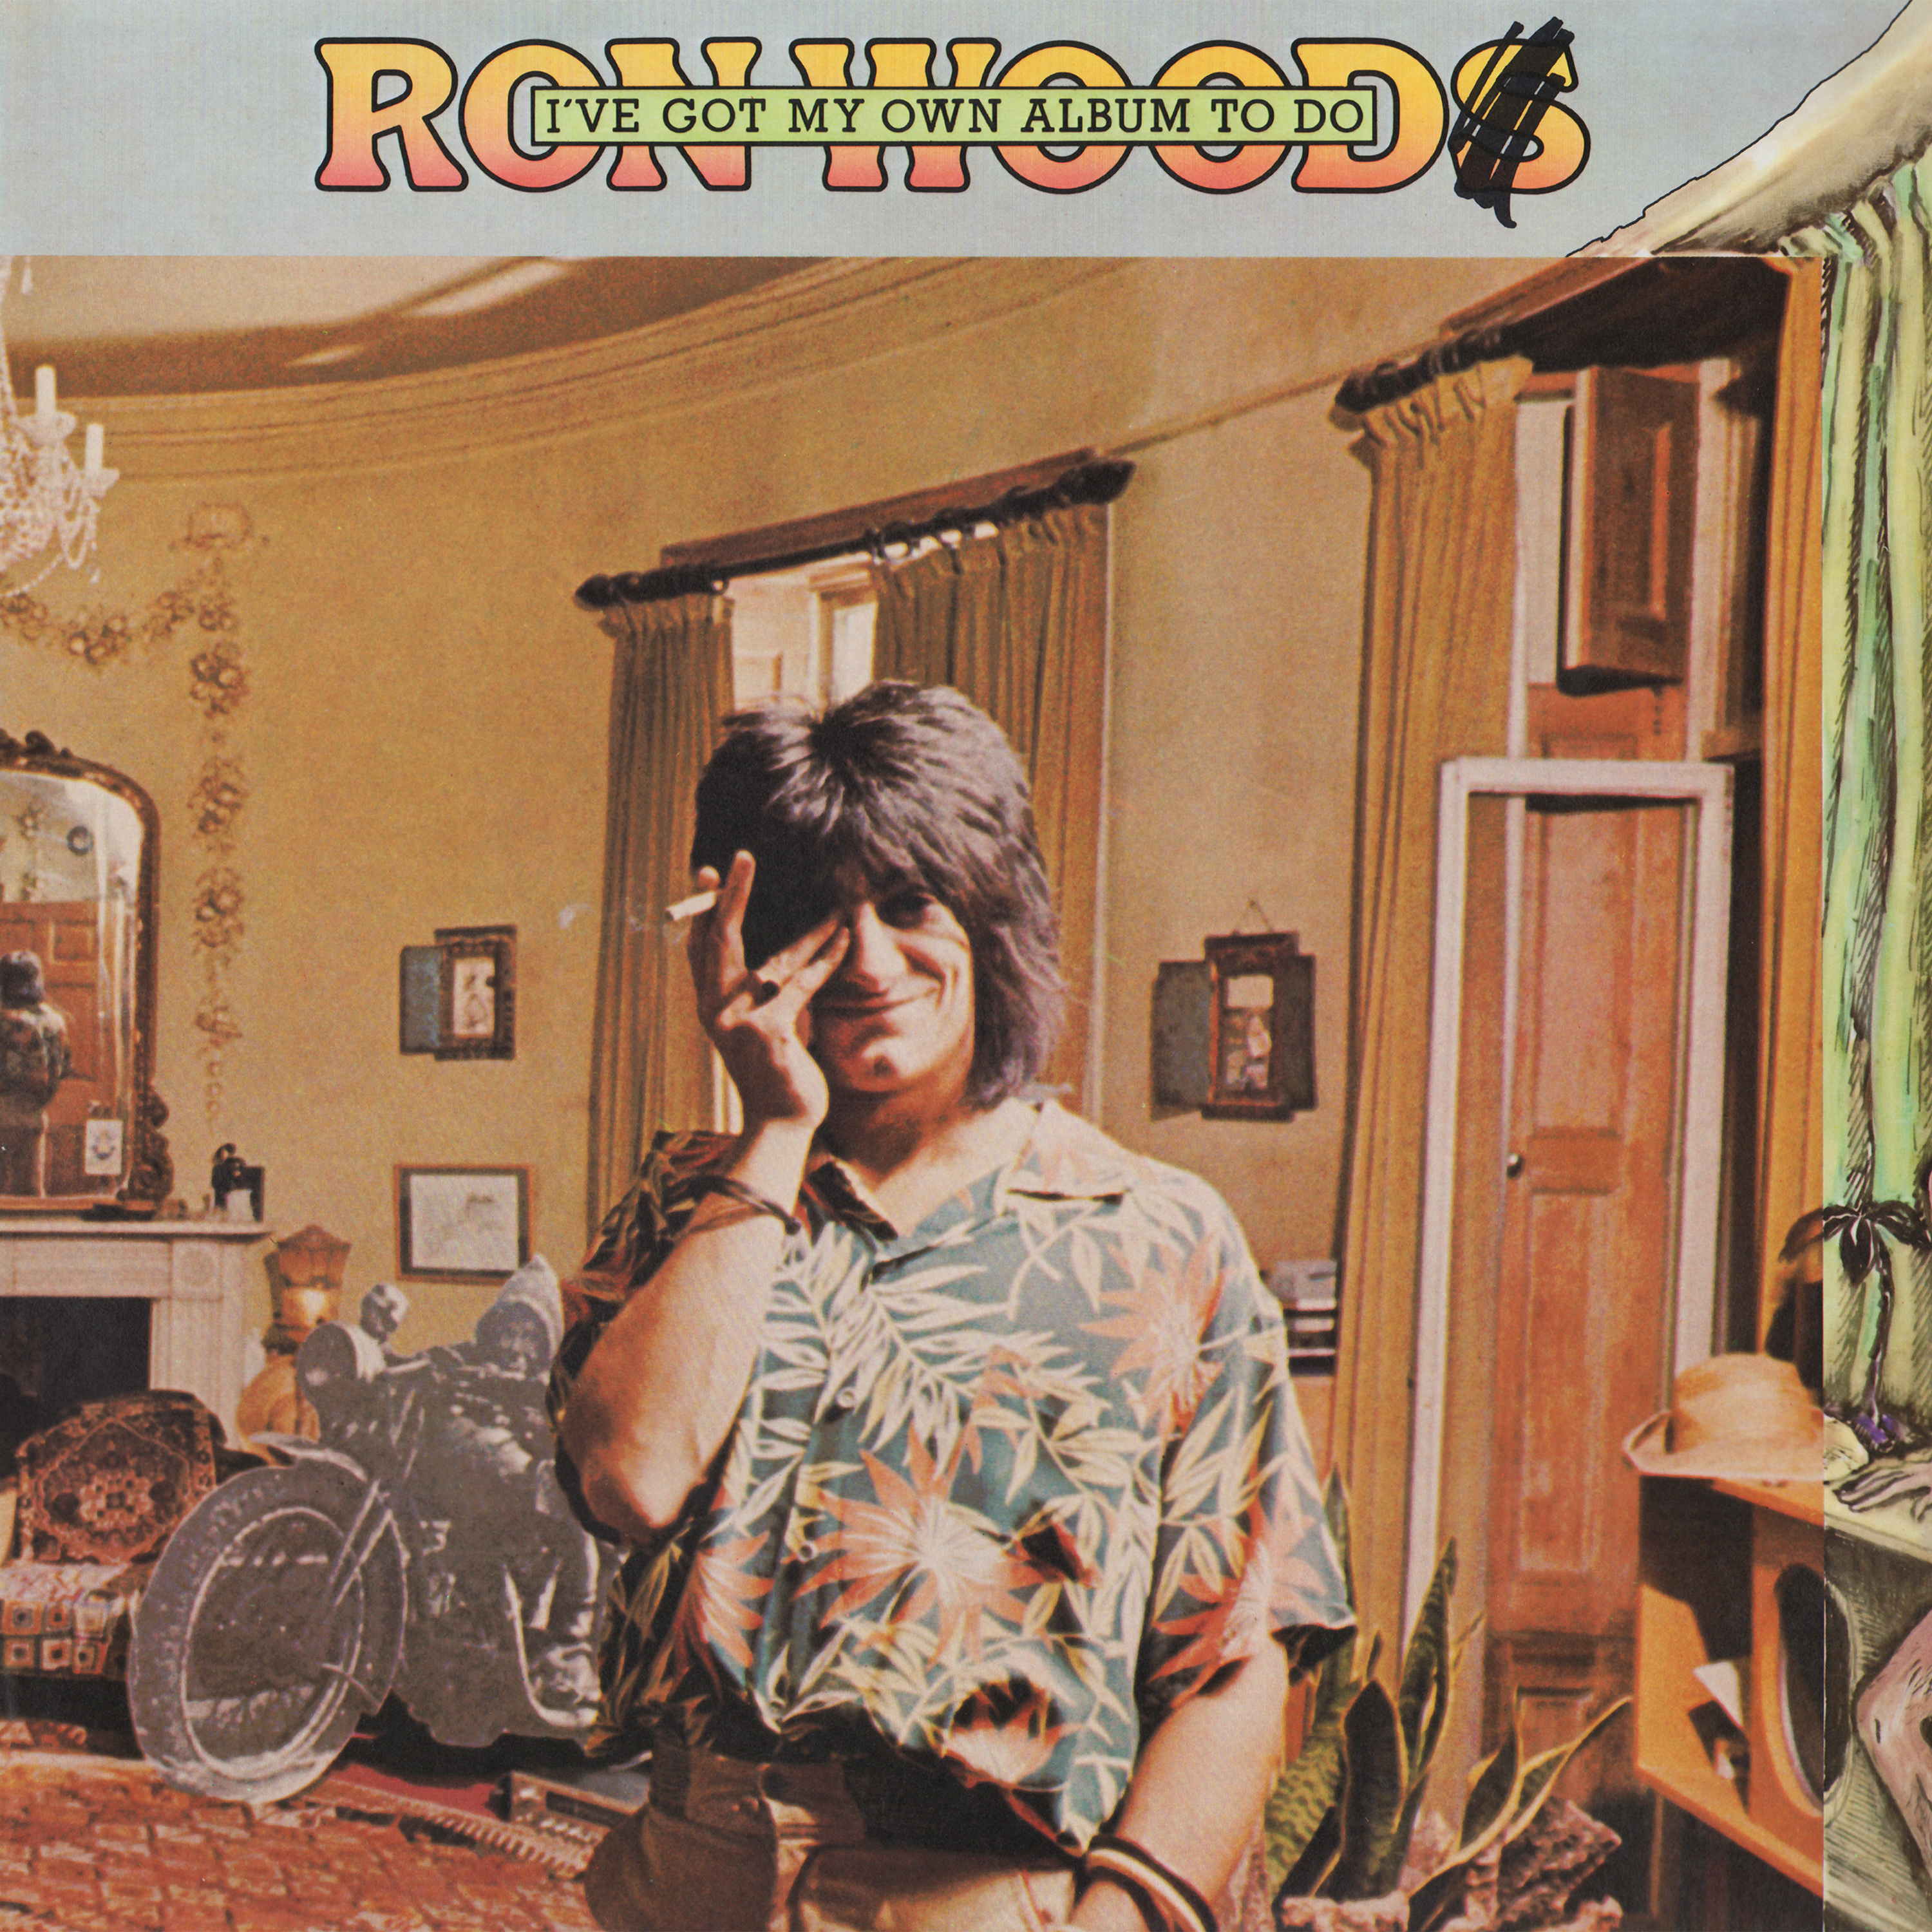 Ron Wood - I've Got My Own Album To Do (180 Gram Translucent Red Audiophile Vinyl/Limited Anniversary Edition)